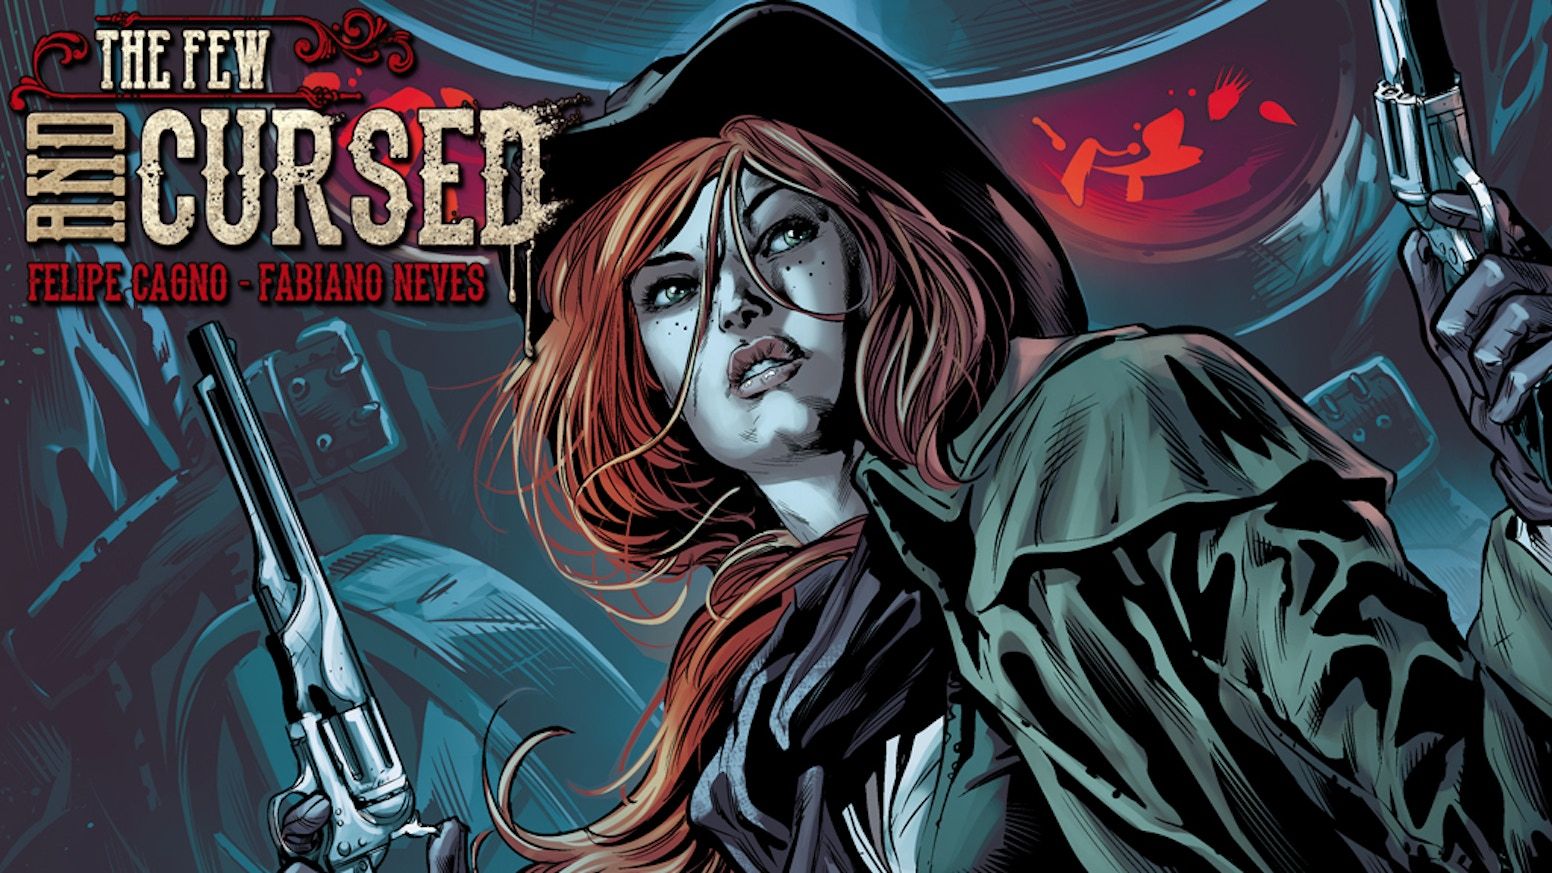 Join the Redhead as she chases the curse of The Crows of Mana'Olana in this epic supernatural western. Issue #1 also available!